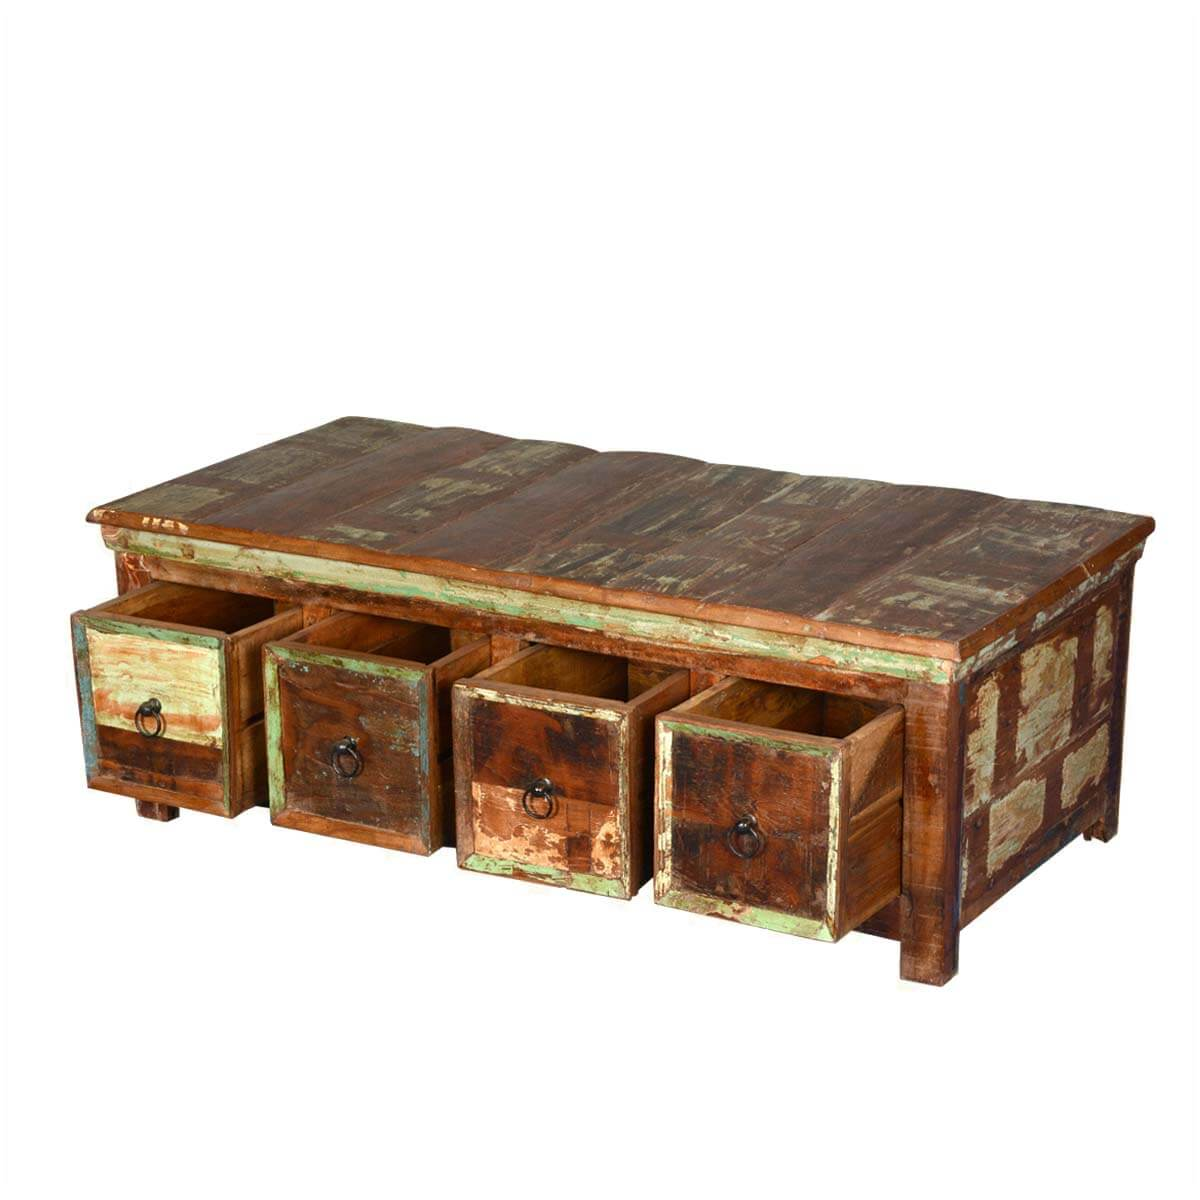 Rustic Reclaimed Wood Coffee Table With Storage Drawers Furniture